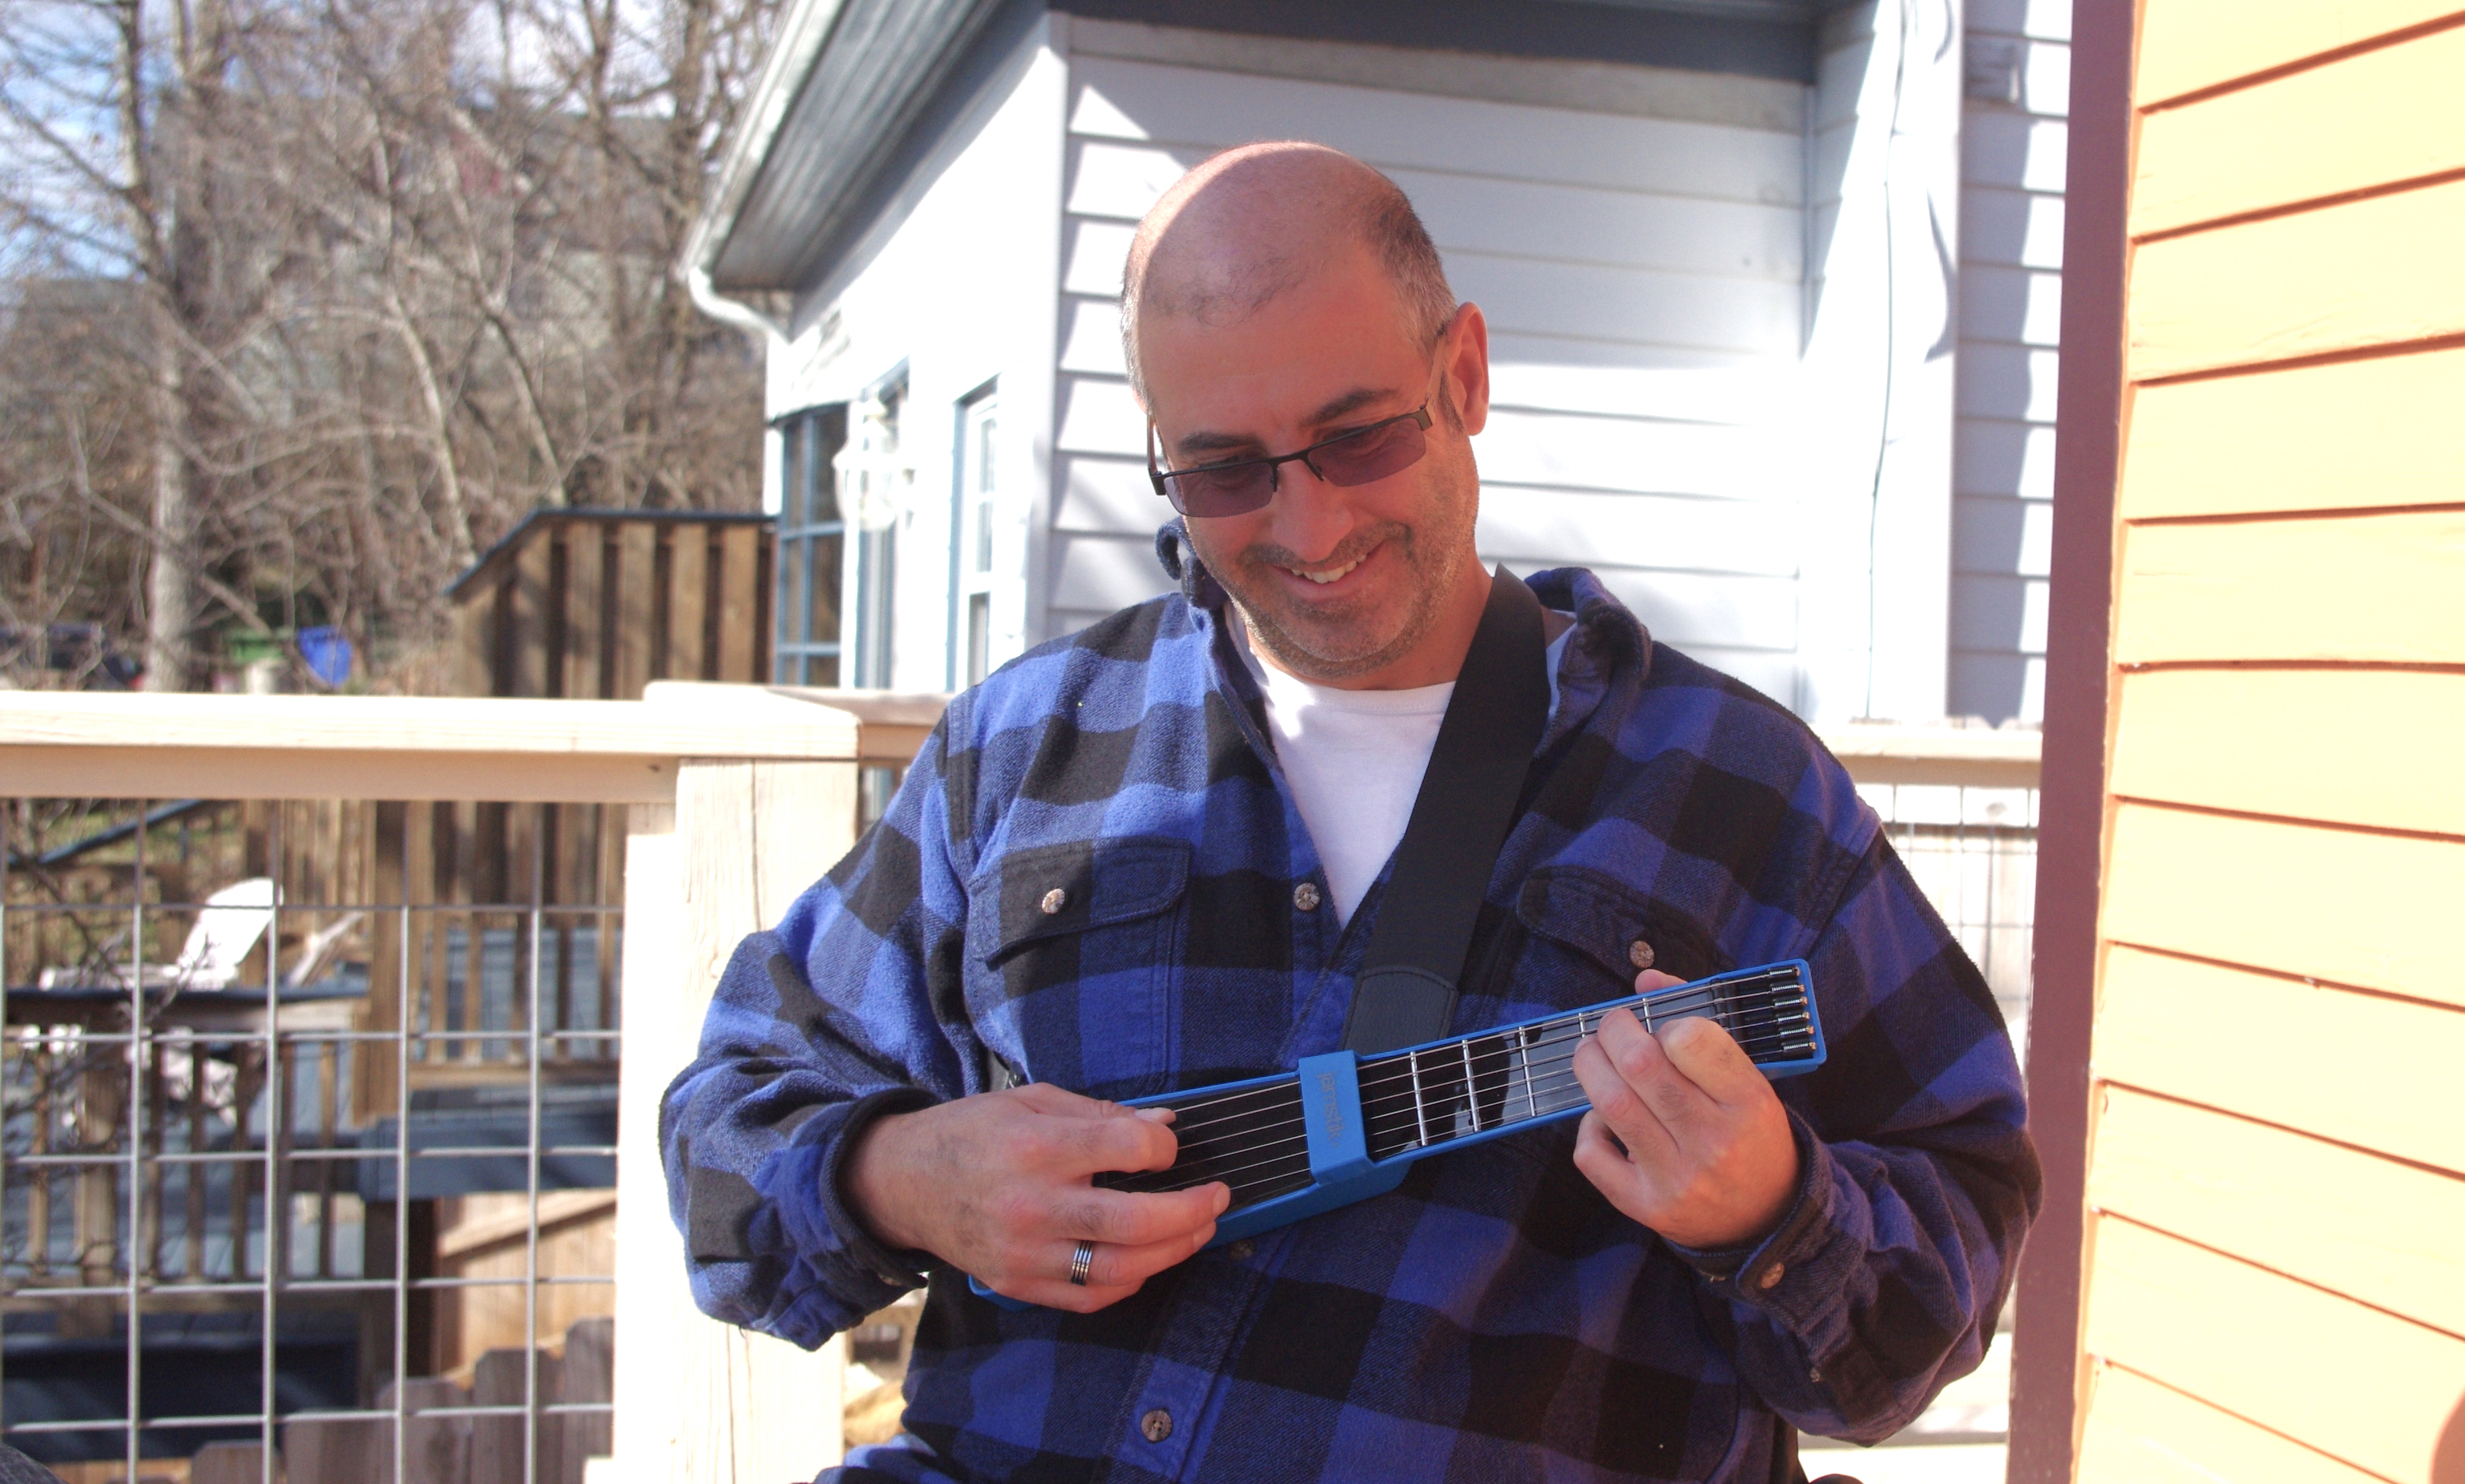 "<p style=""margin-left: 20px;"">It's not quite a stage in Nashville, but the author hopes he can at least play a song or two on his deck with the JamStik in a few months.</p>"